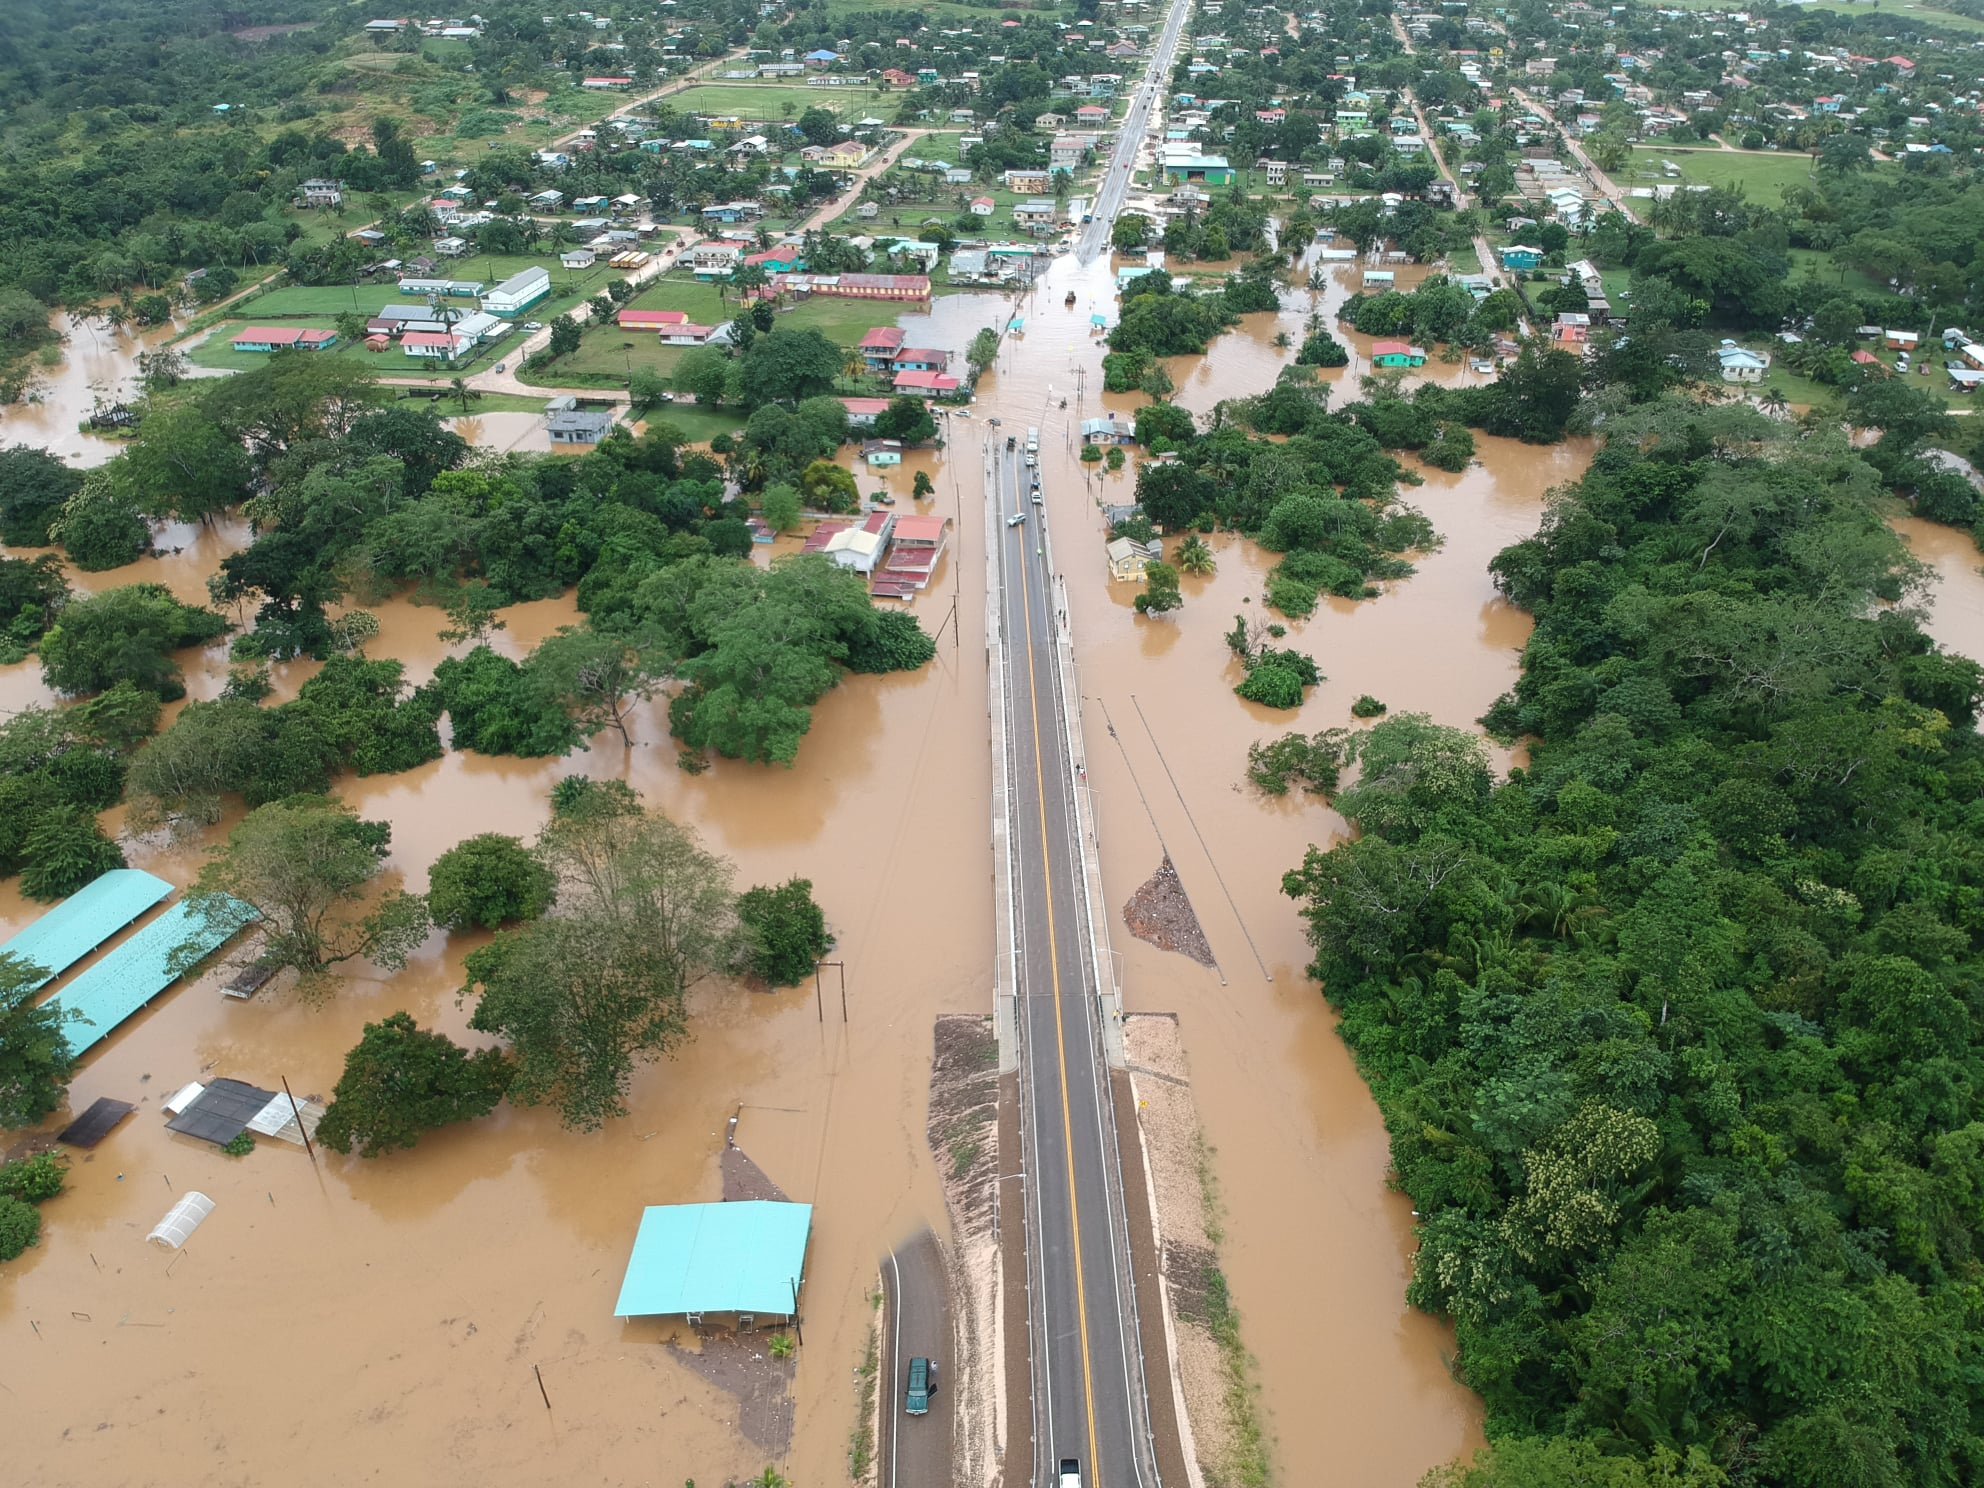 Flooding expected to continue after Tropical Depression Eta leaves Central